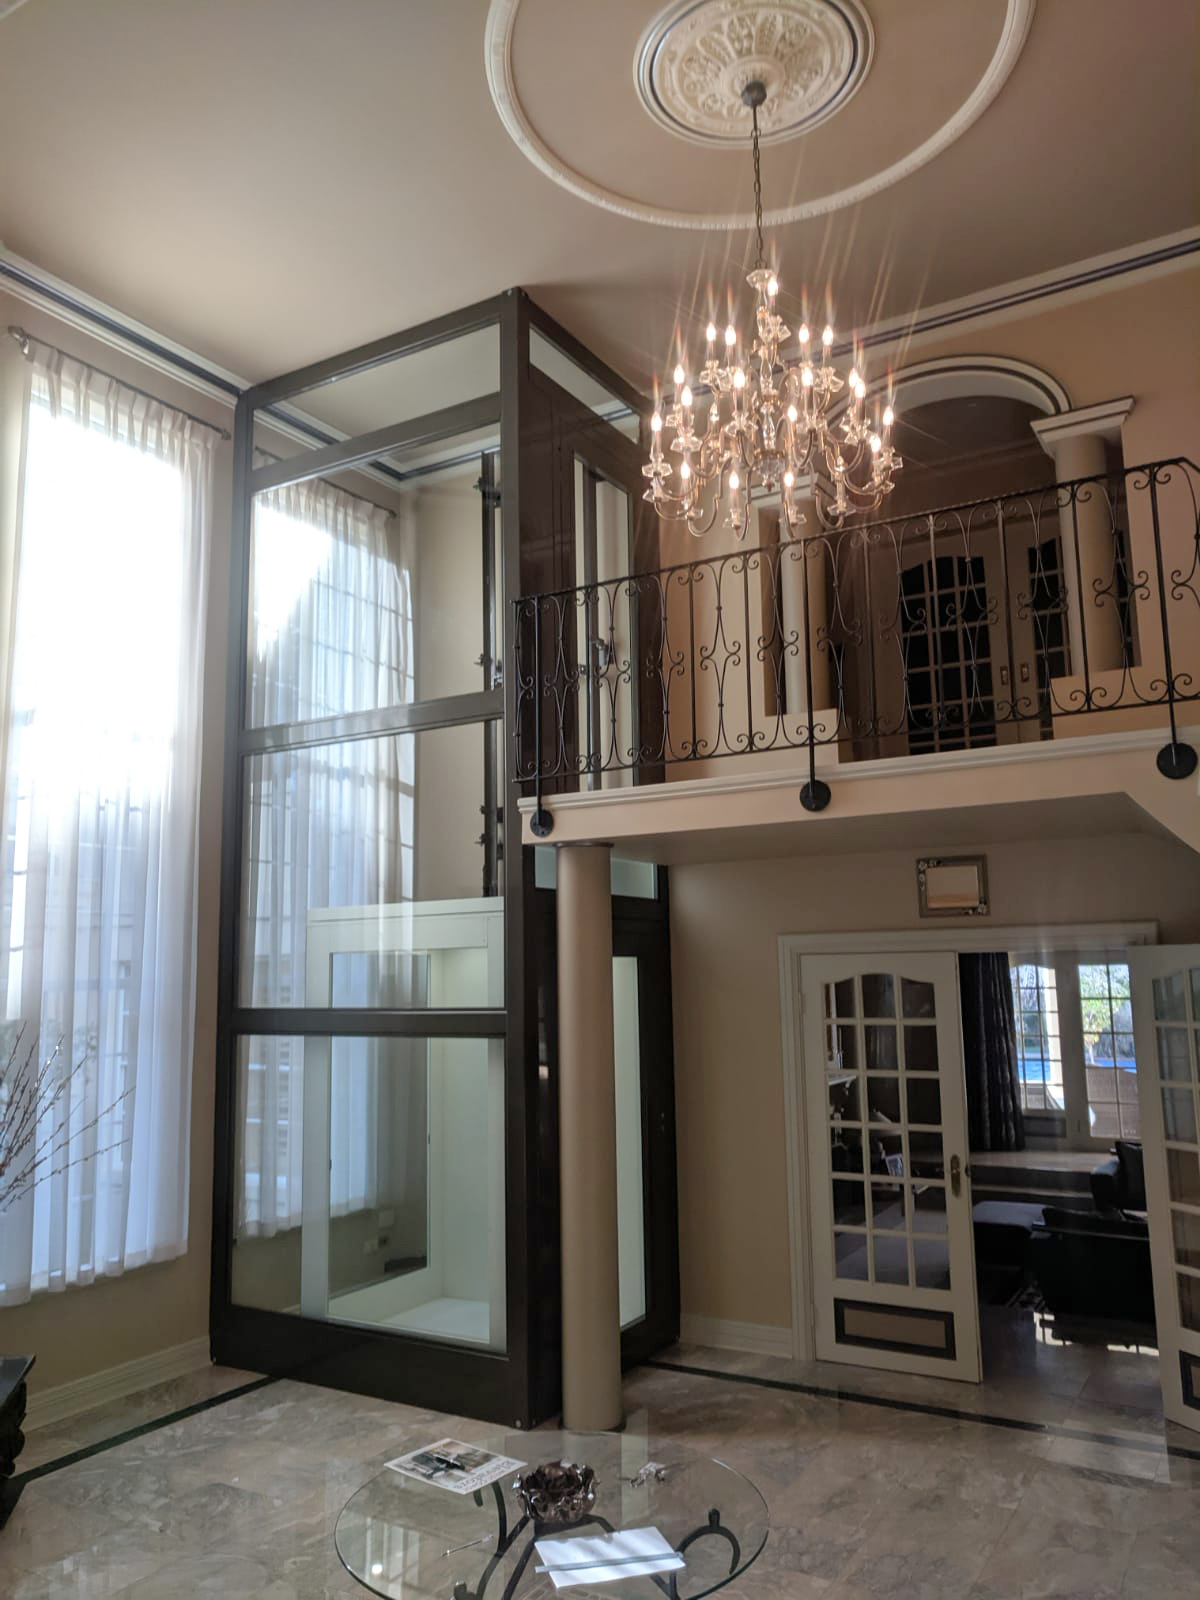 can you retrofit a lift in your home - after